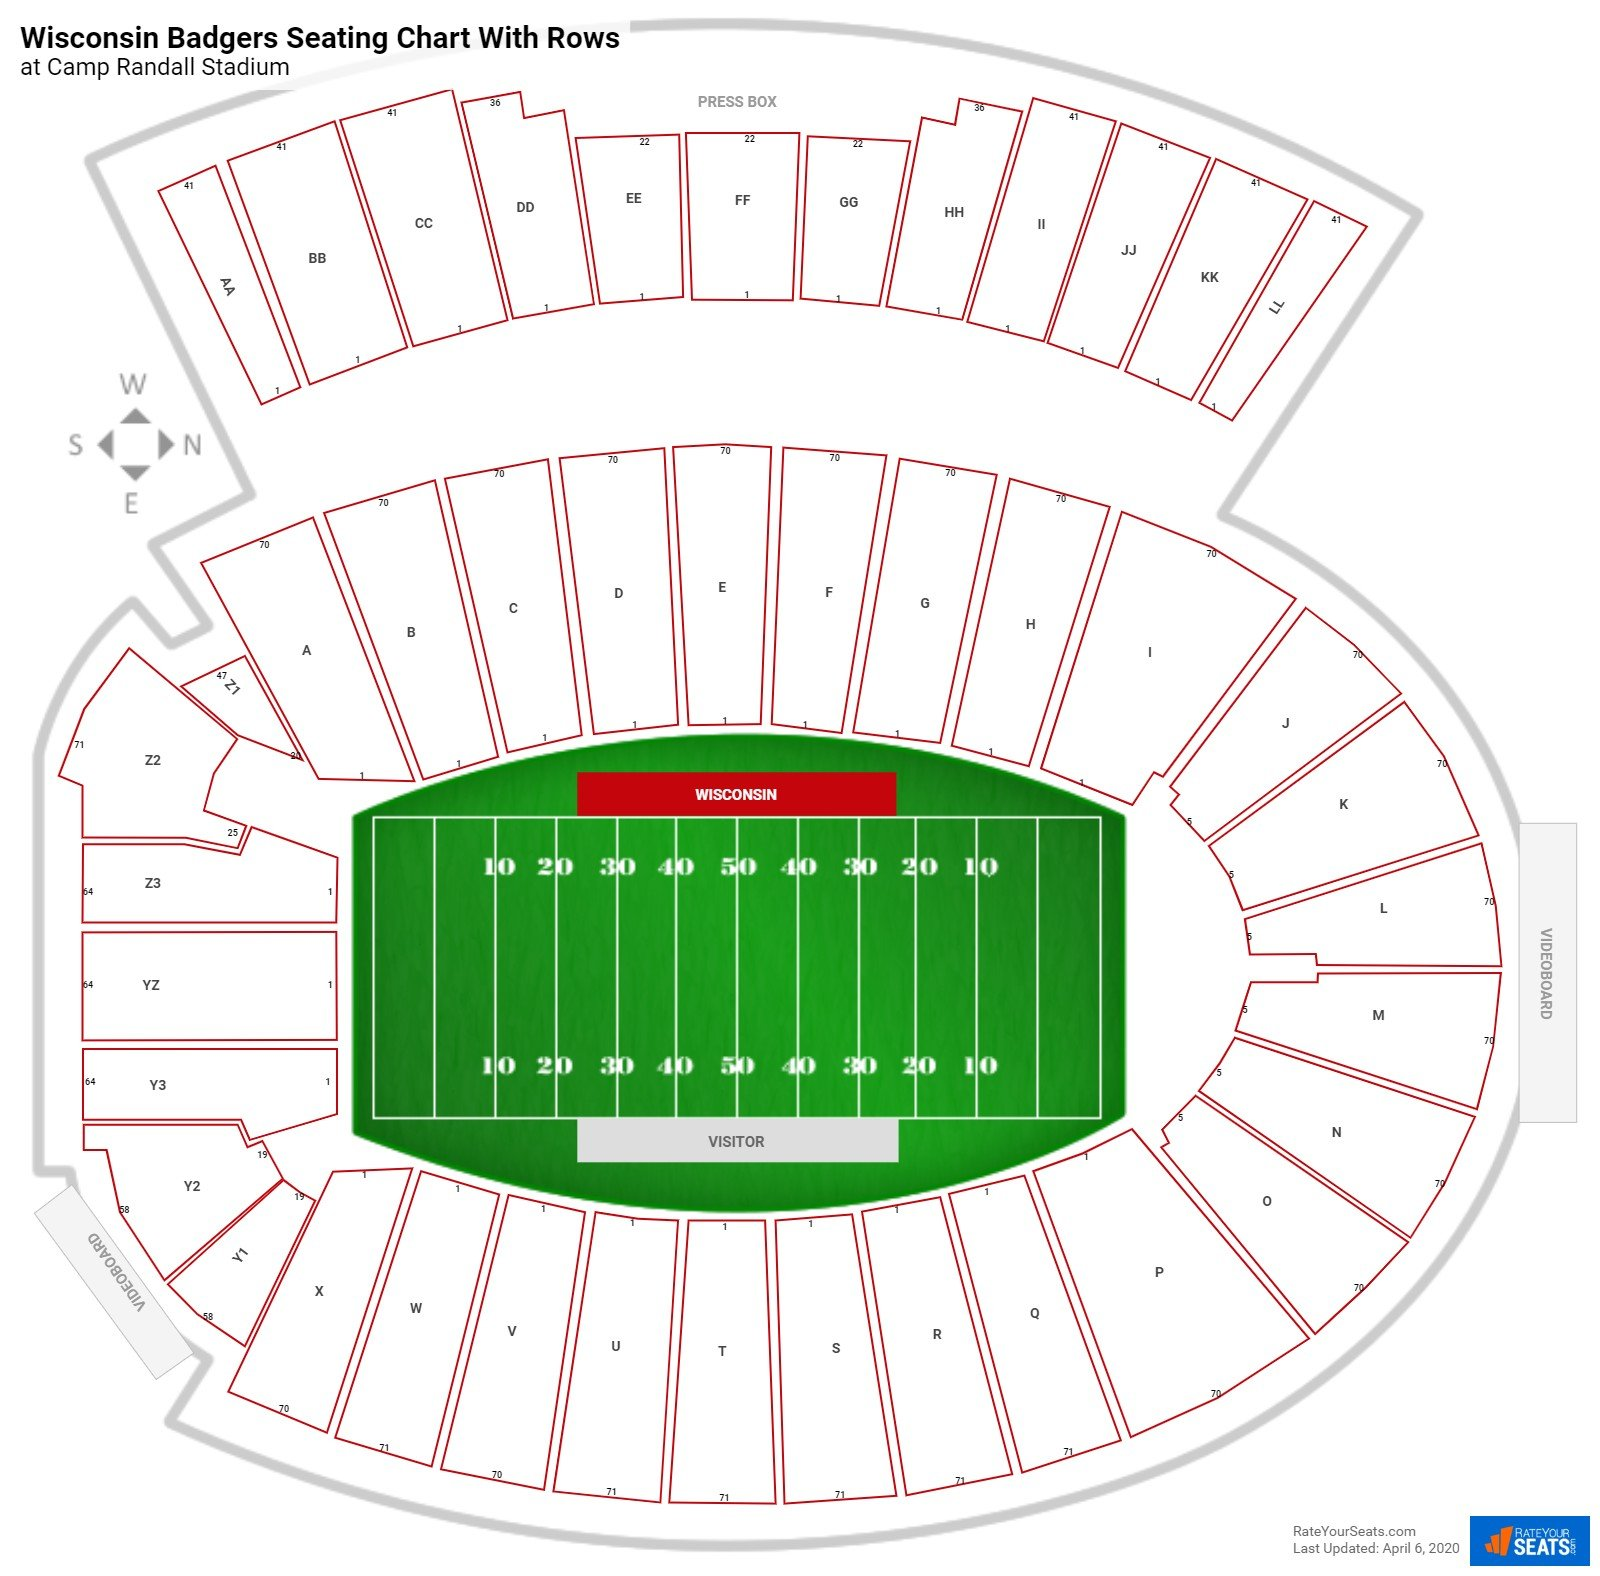 Camp Randall Stadium seating chart with rows